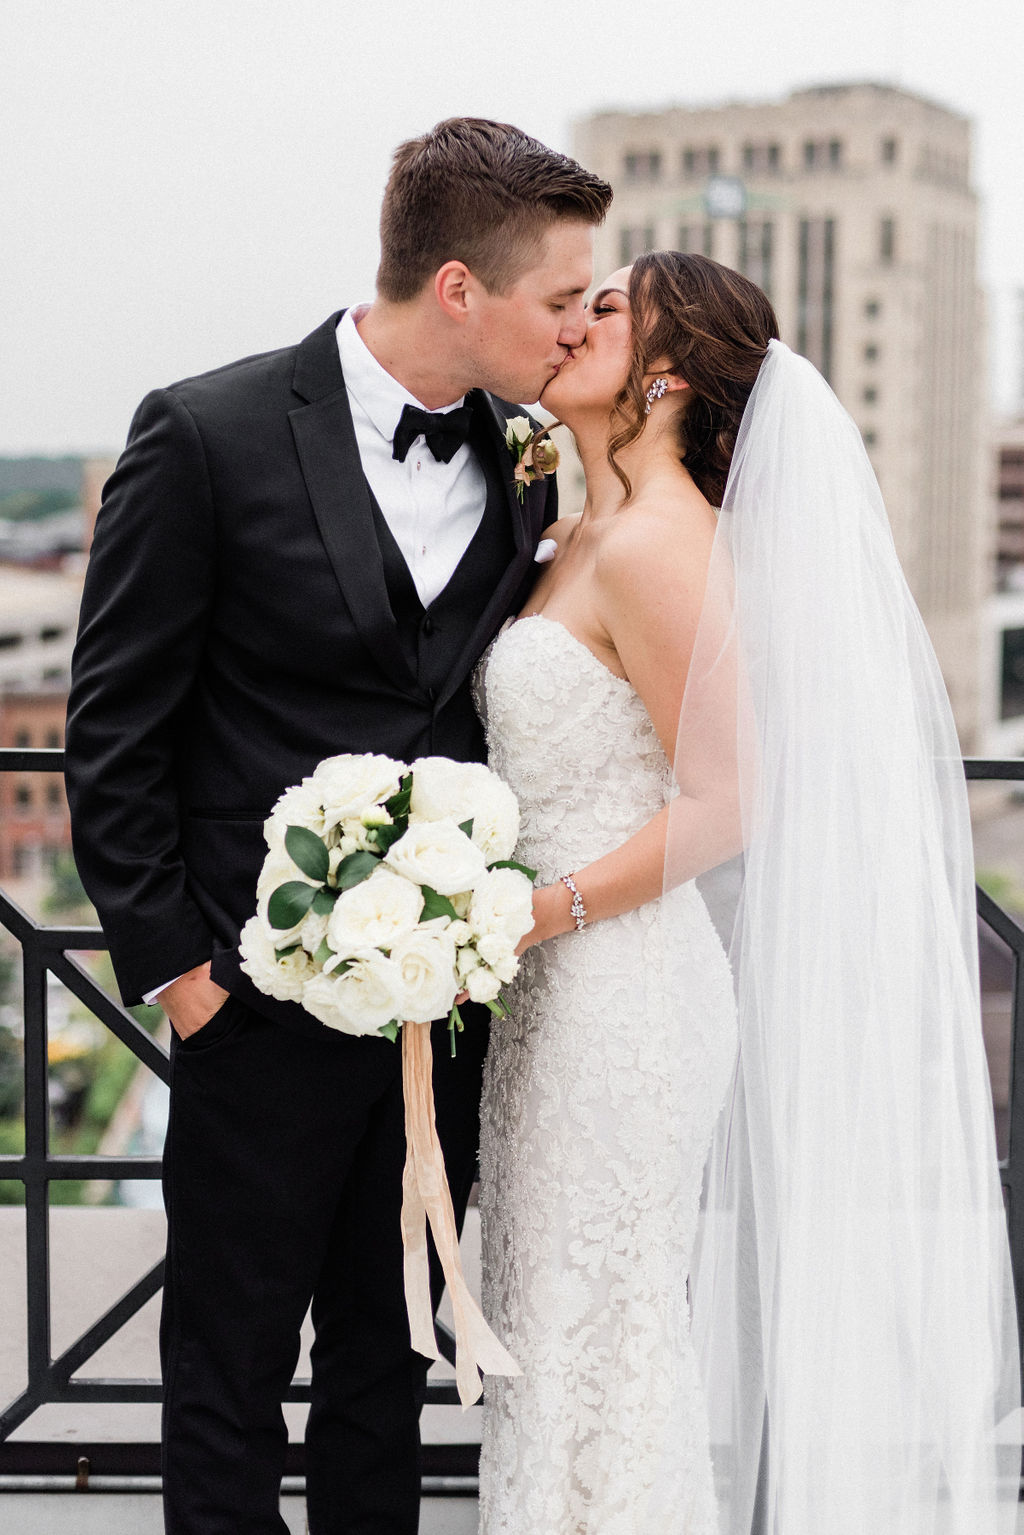 A couple sharing a kiss before their downtown kalamazoo wedding